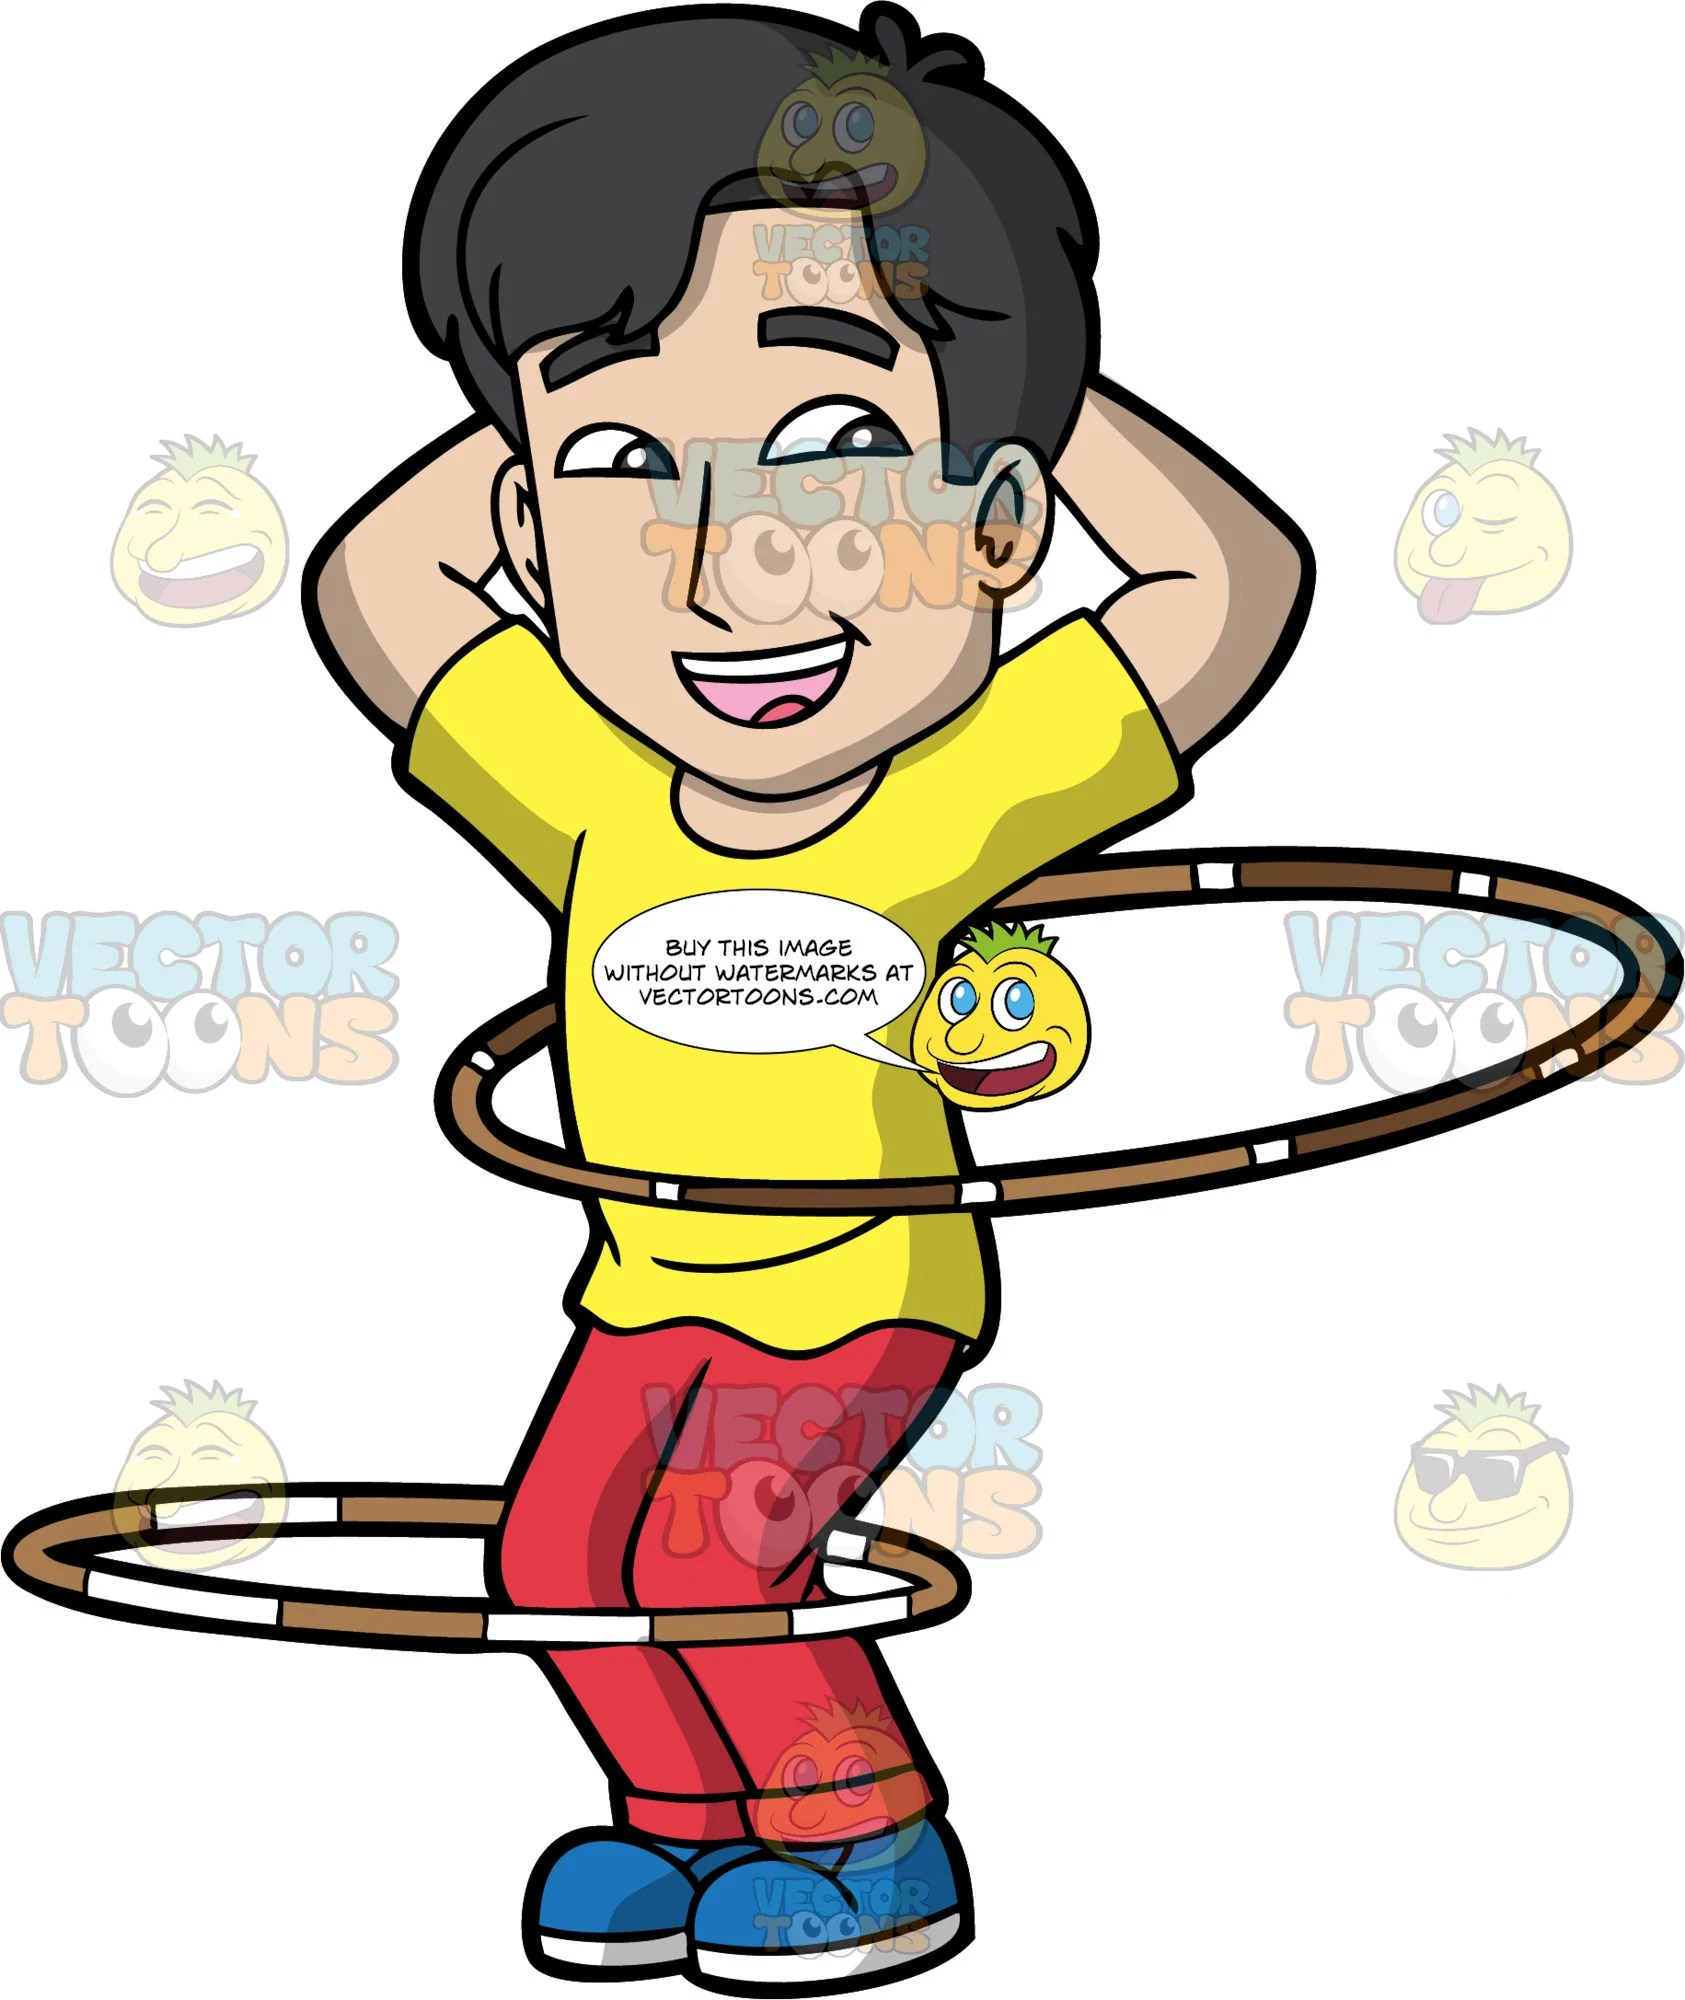 hight resolution of a joyful guy twirling hula hoops a man with black hair wearing a yellow